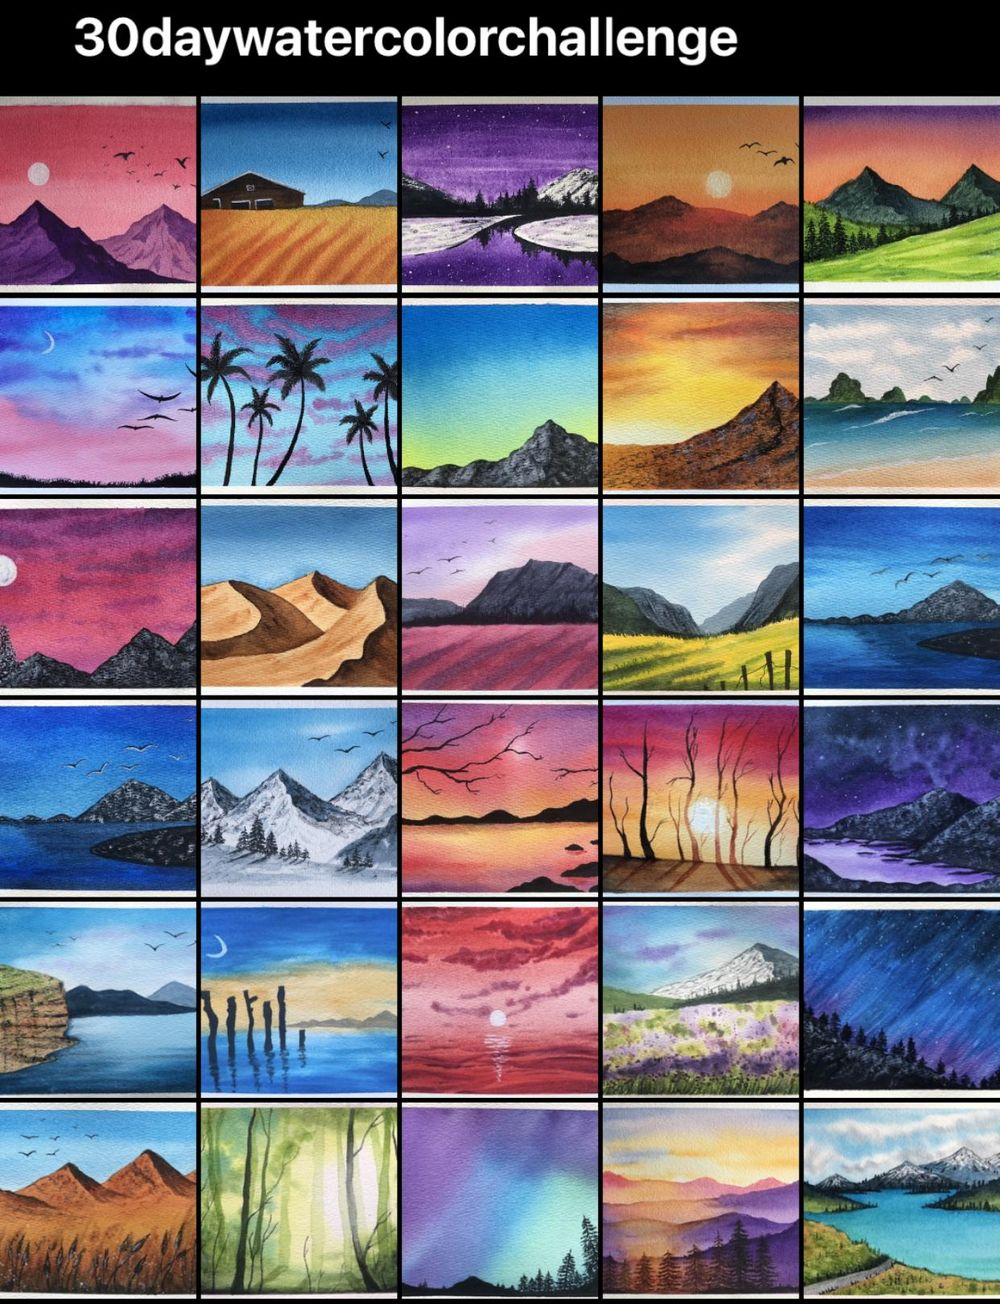 My projects from 30daywatercolorchallenge by Zaneena - image 1 - student project